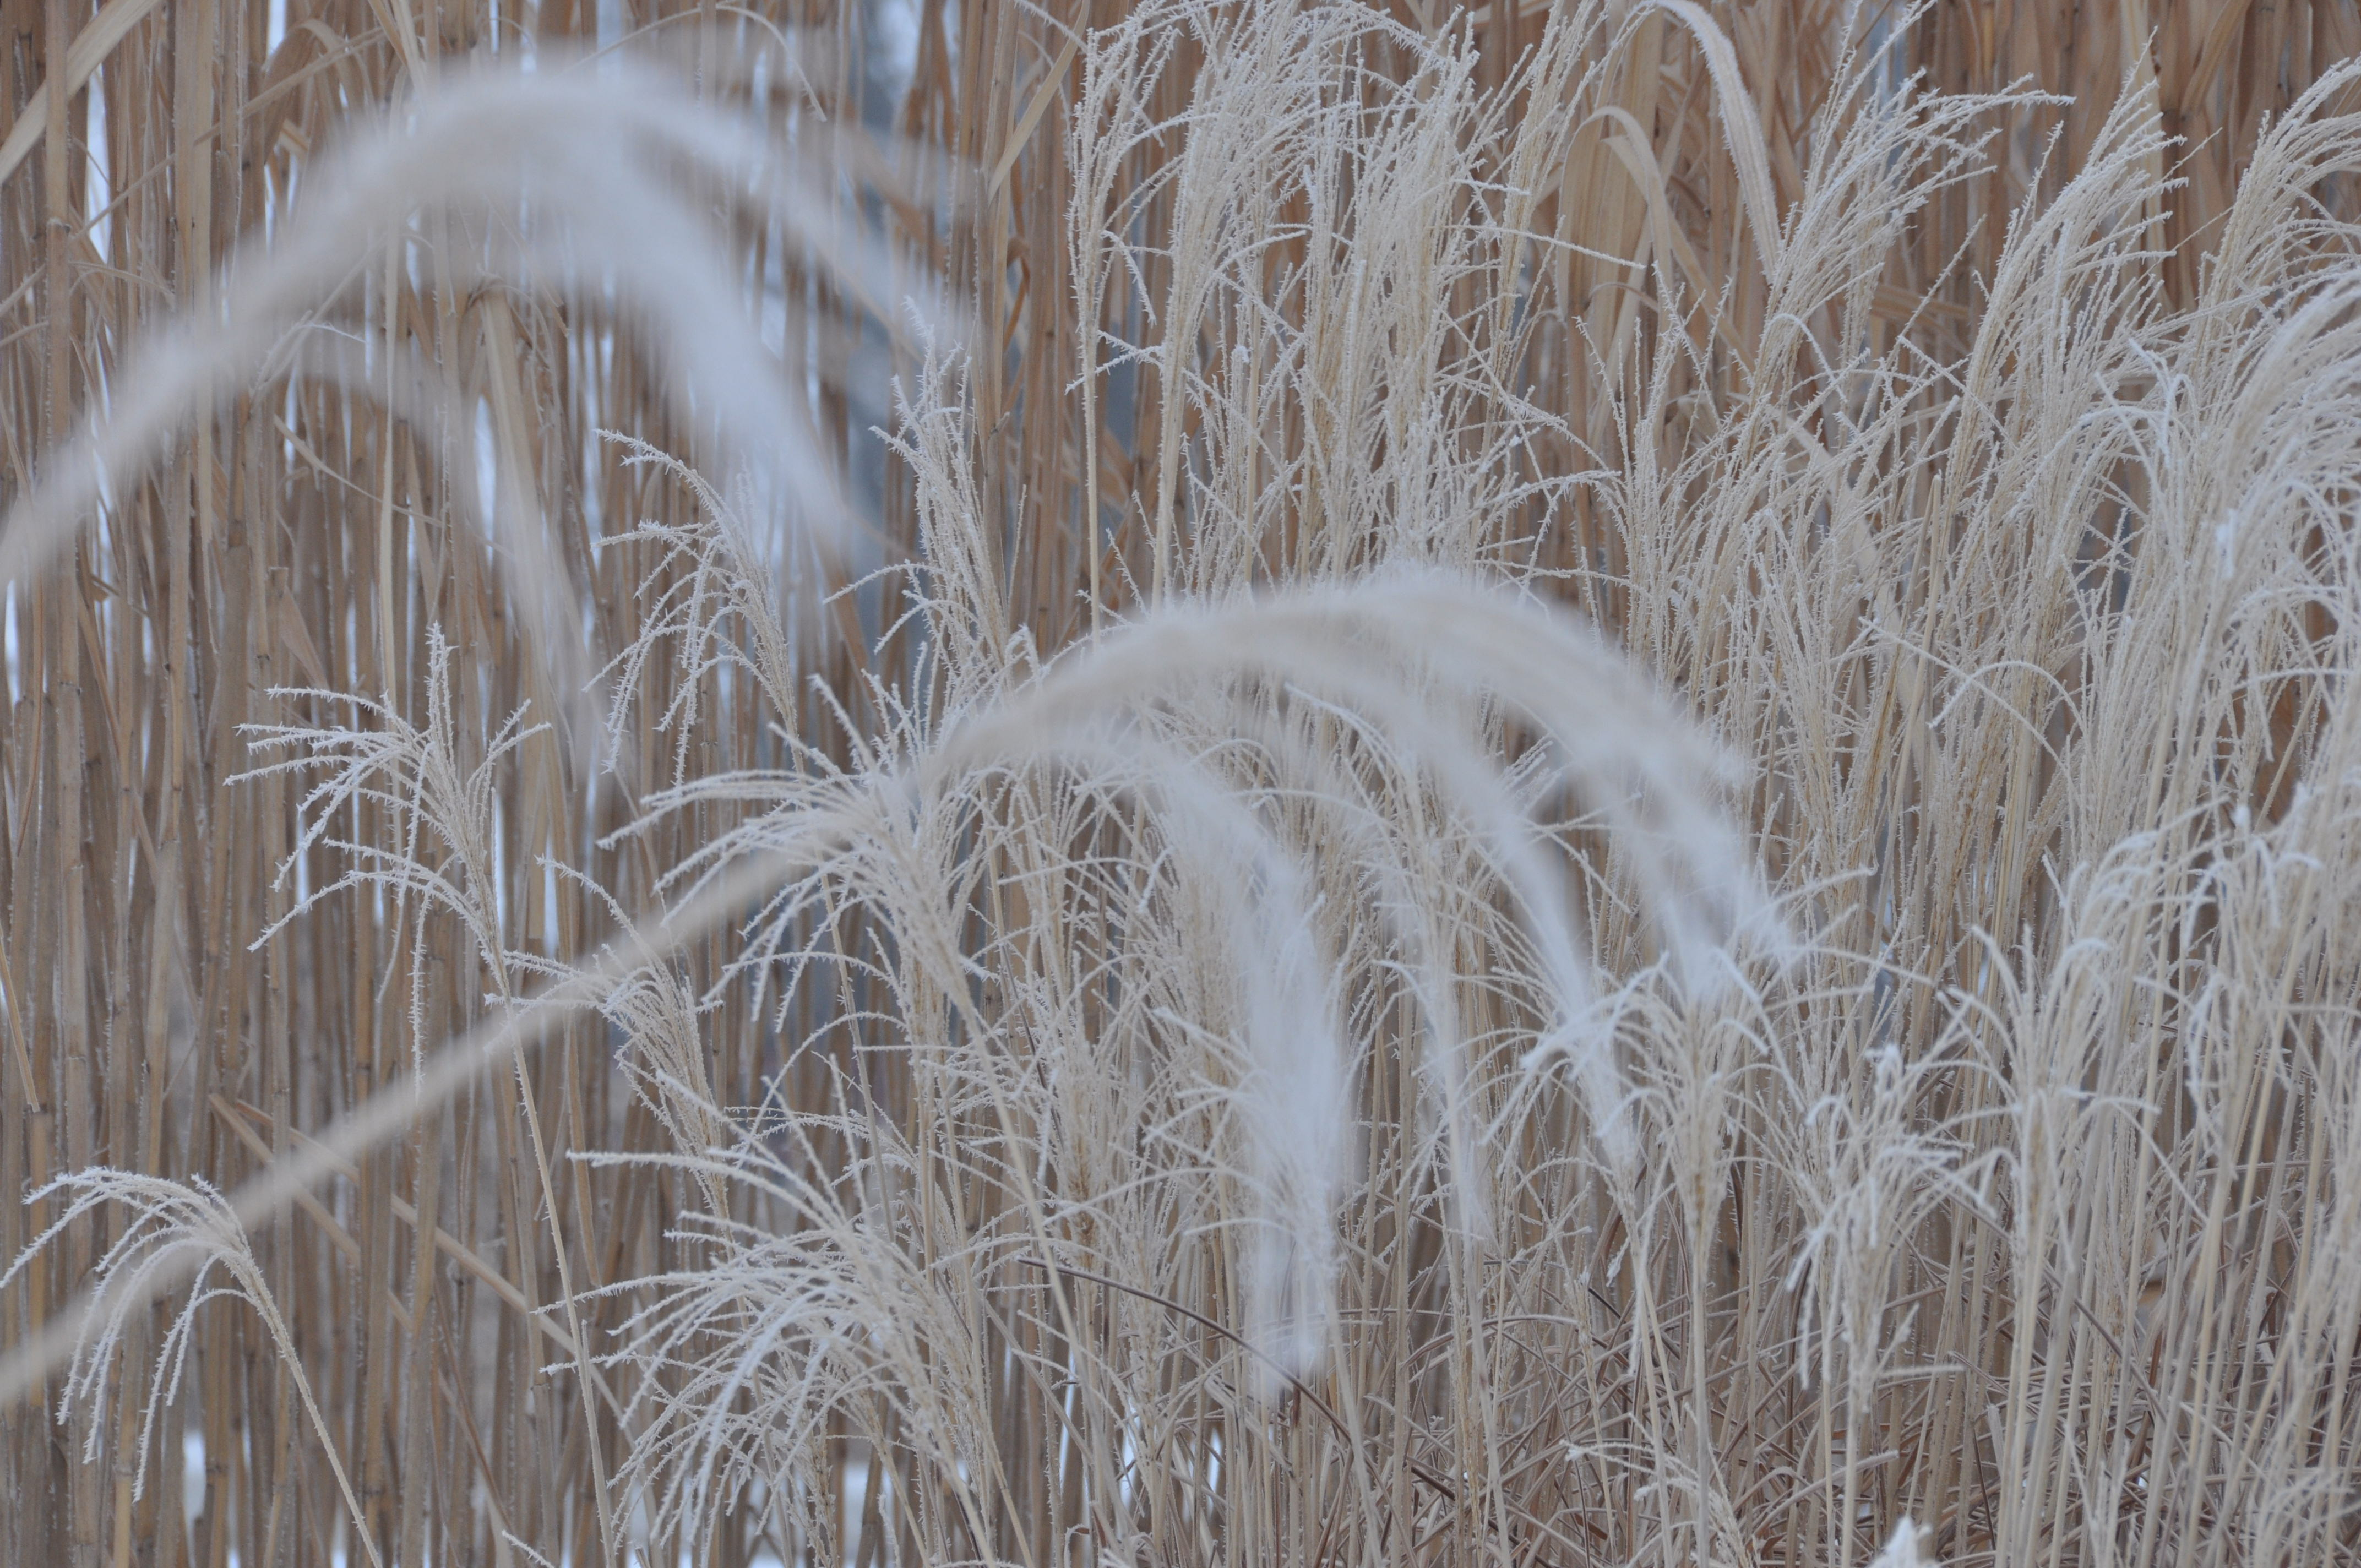 Frost coated grasses add an ethereal element.